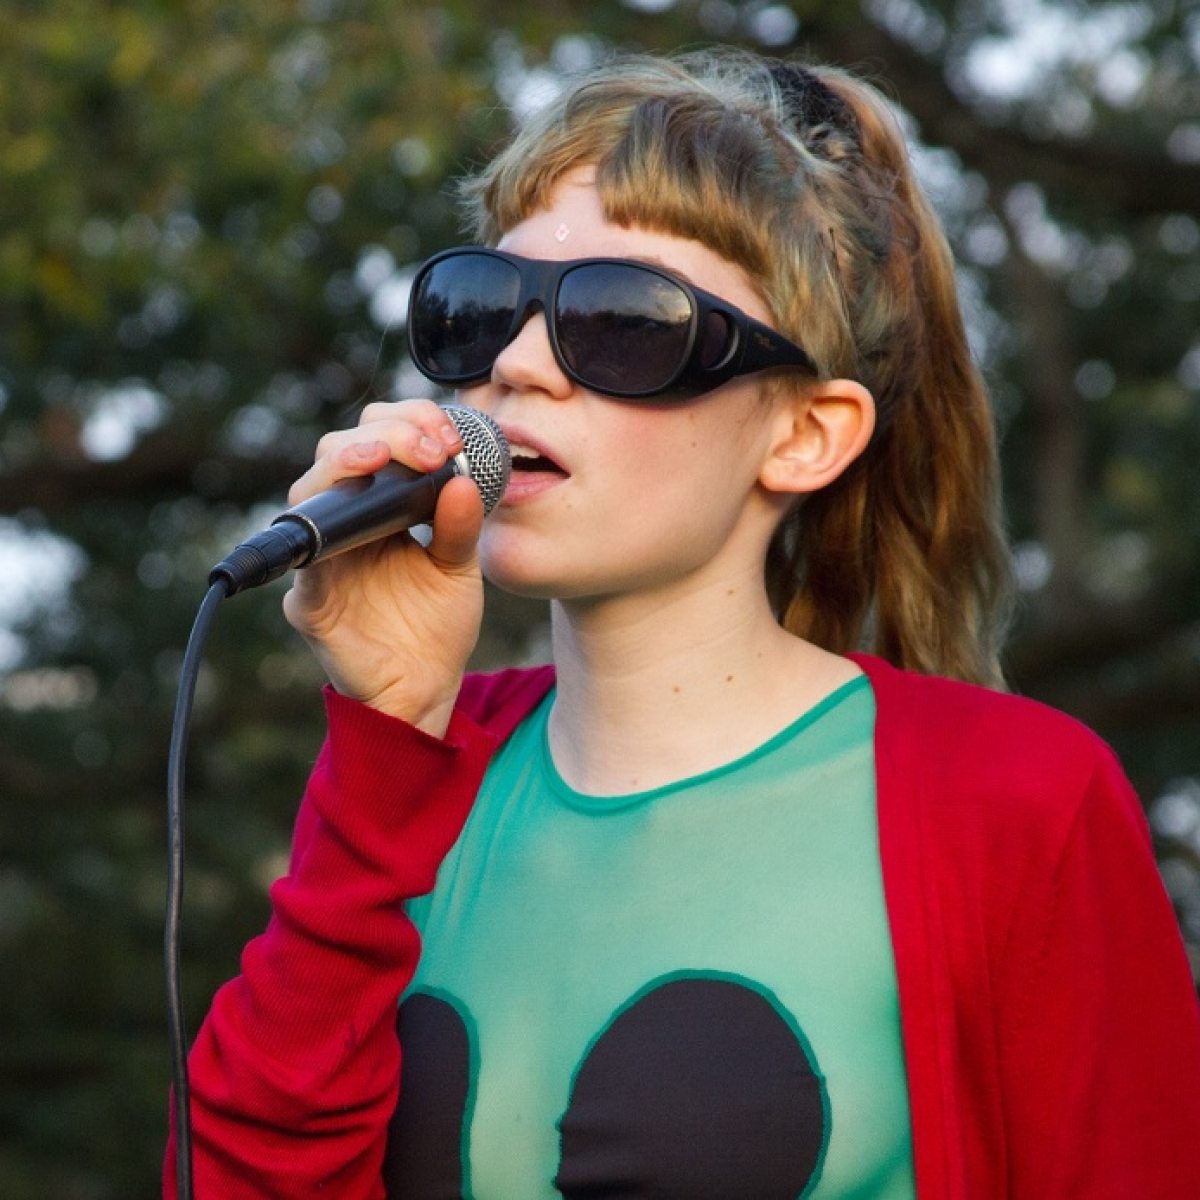 Canadian singer Grimes is legally selling her soul as part of virtual art exhibition